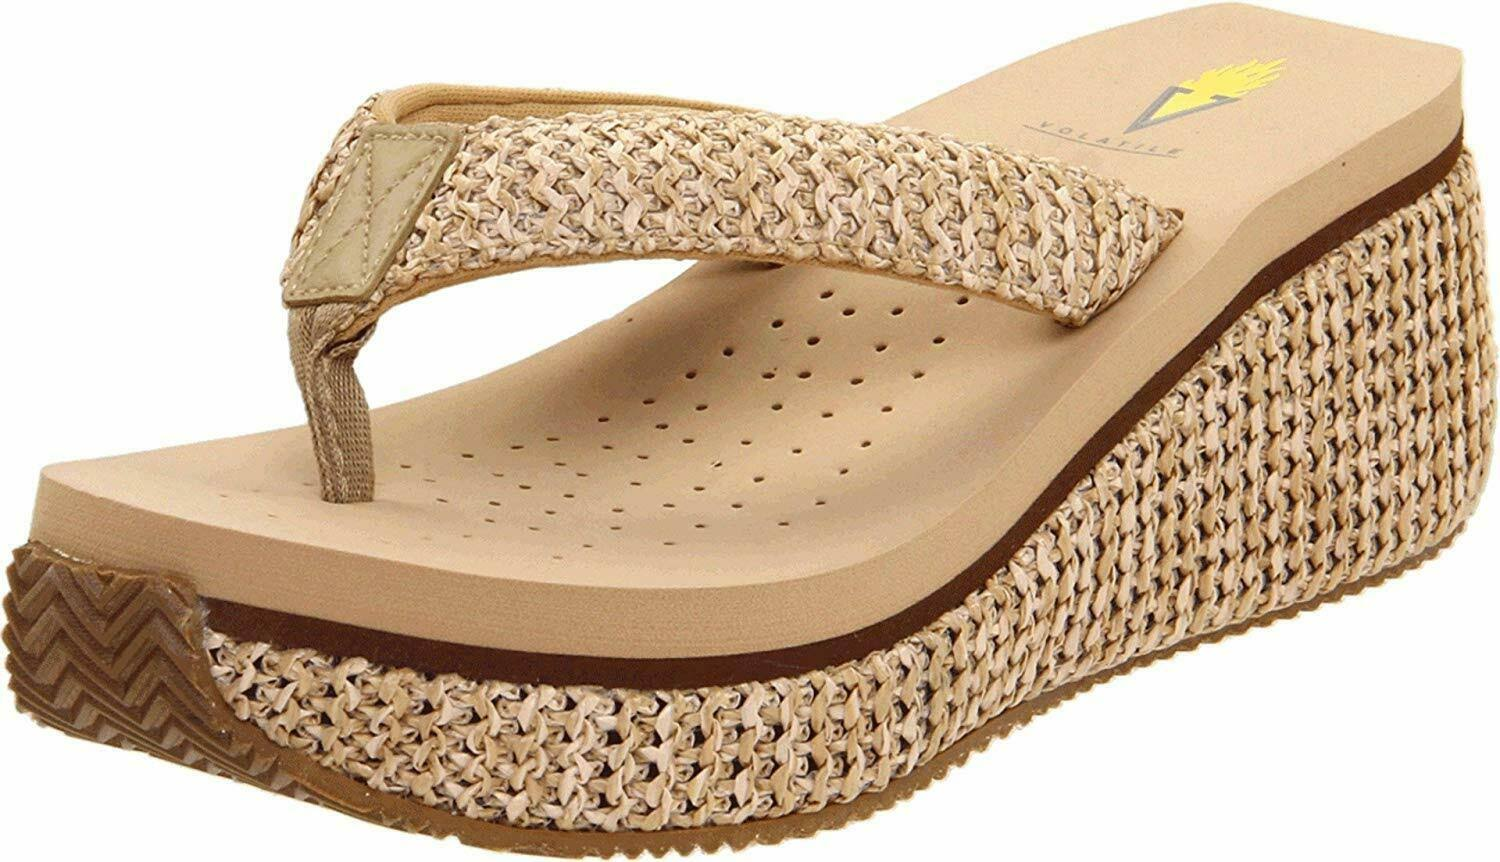 Volatile Women's Island Wedge Sandals - Natural, 10 USW